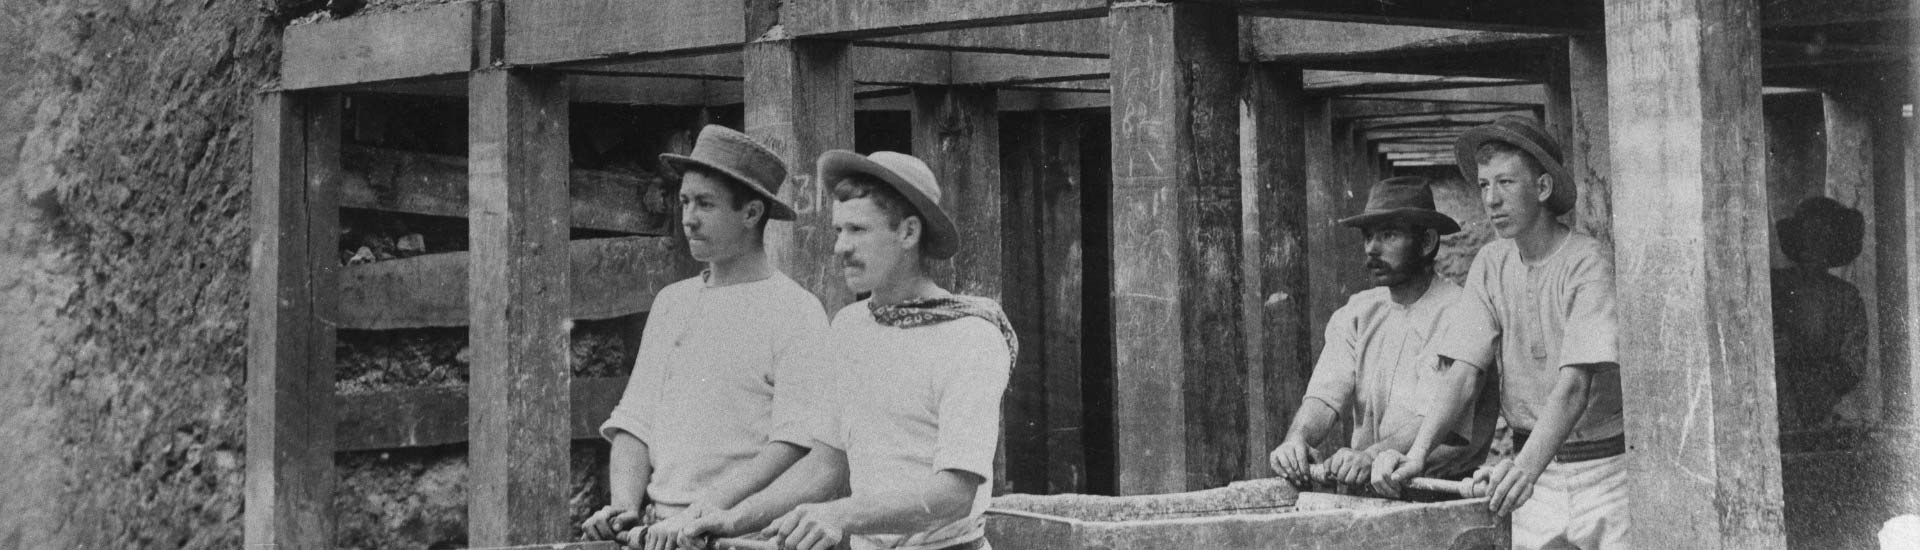 Miners at Mount Morgan mine ca. 1890, Image: John Oxley Library, State Library of Queensland